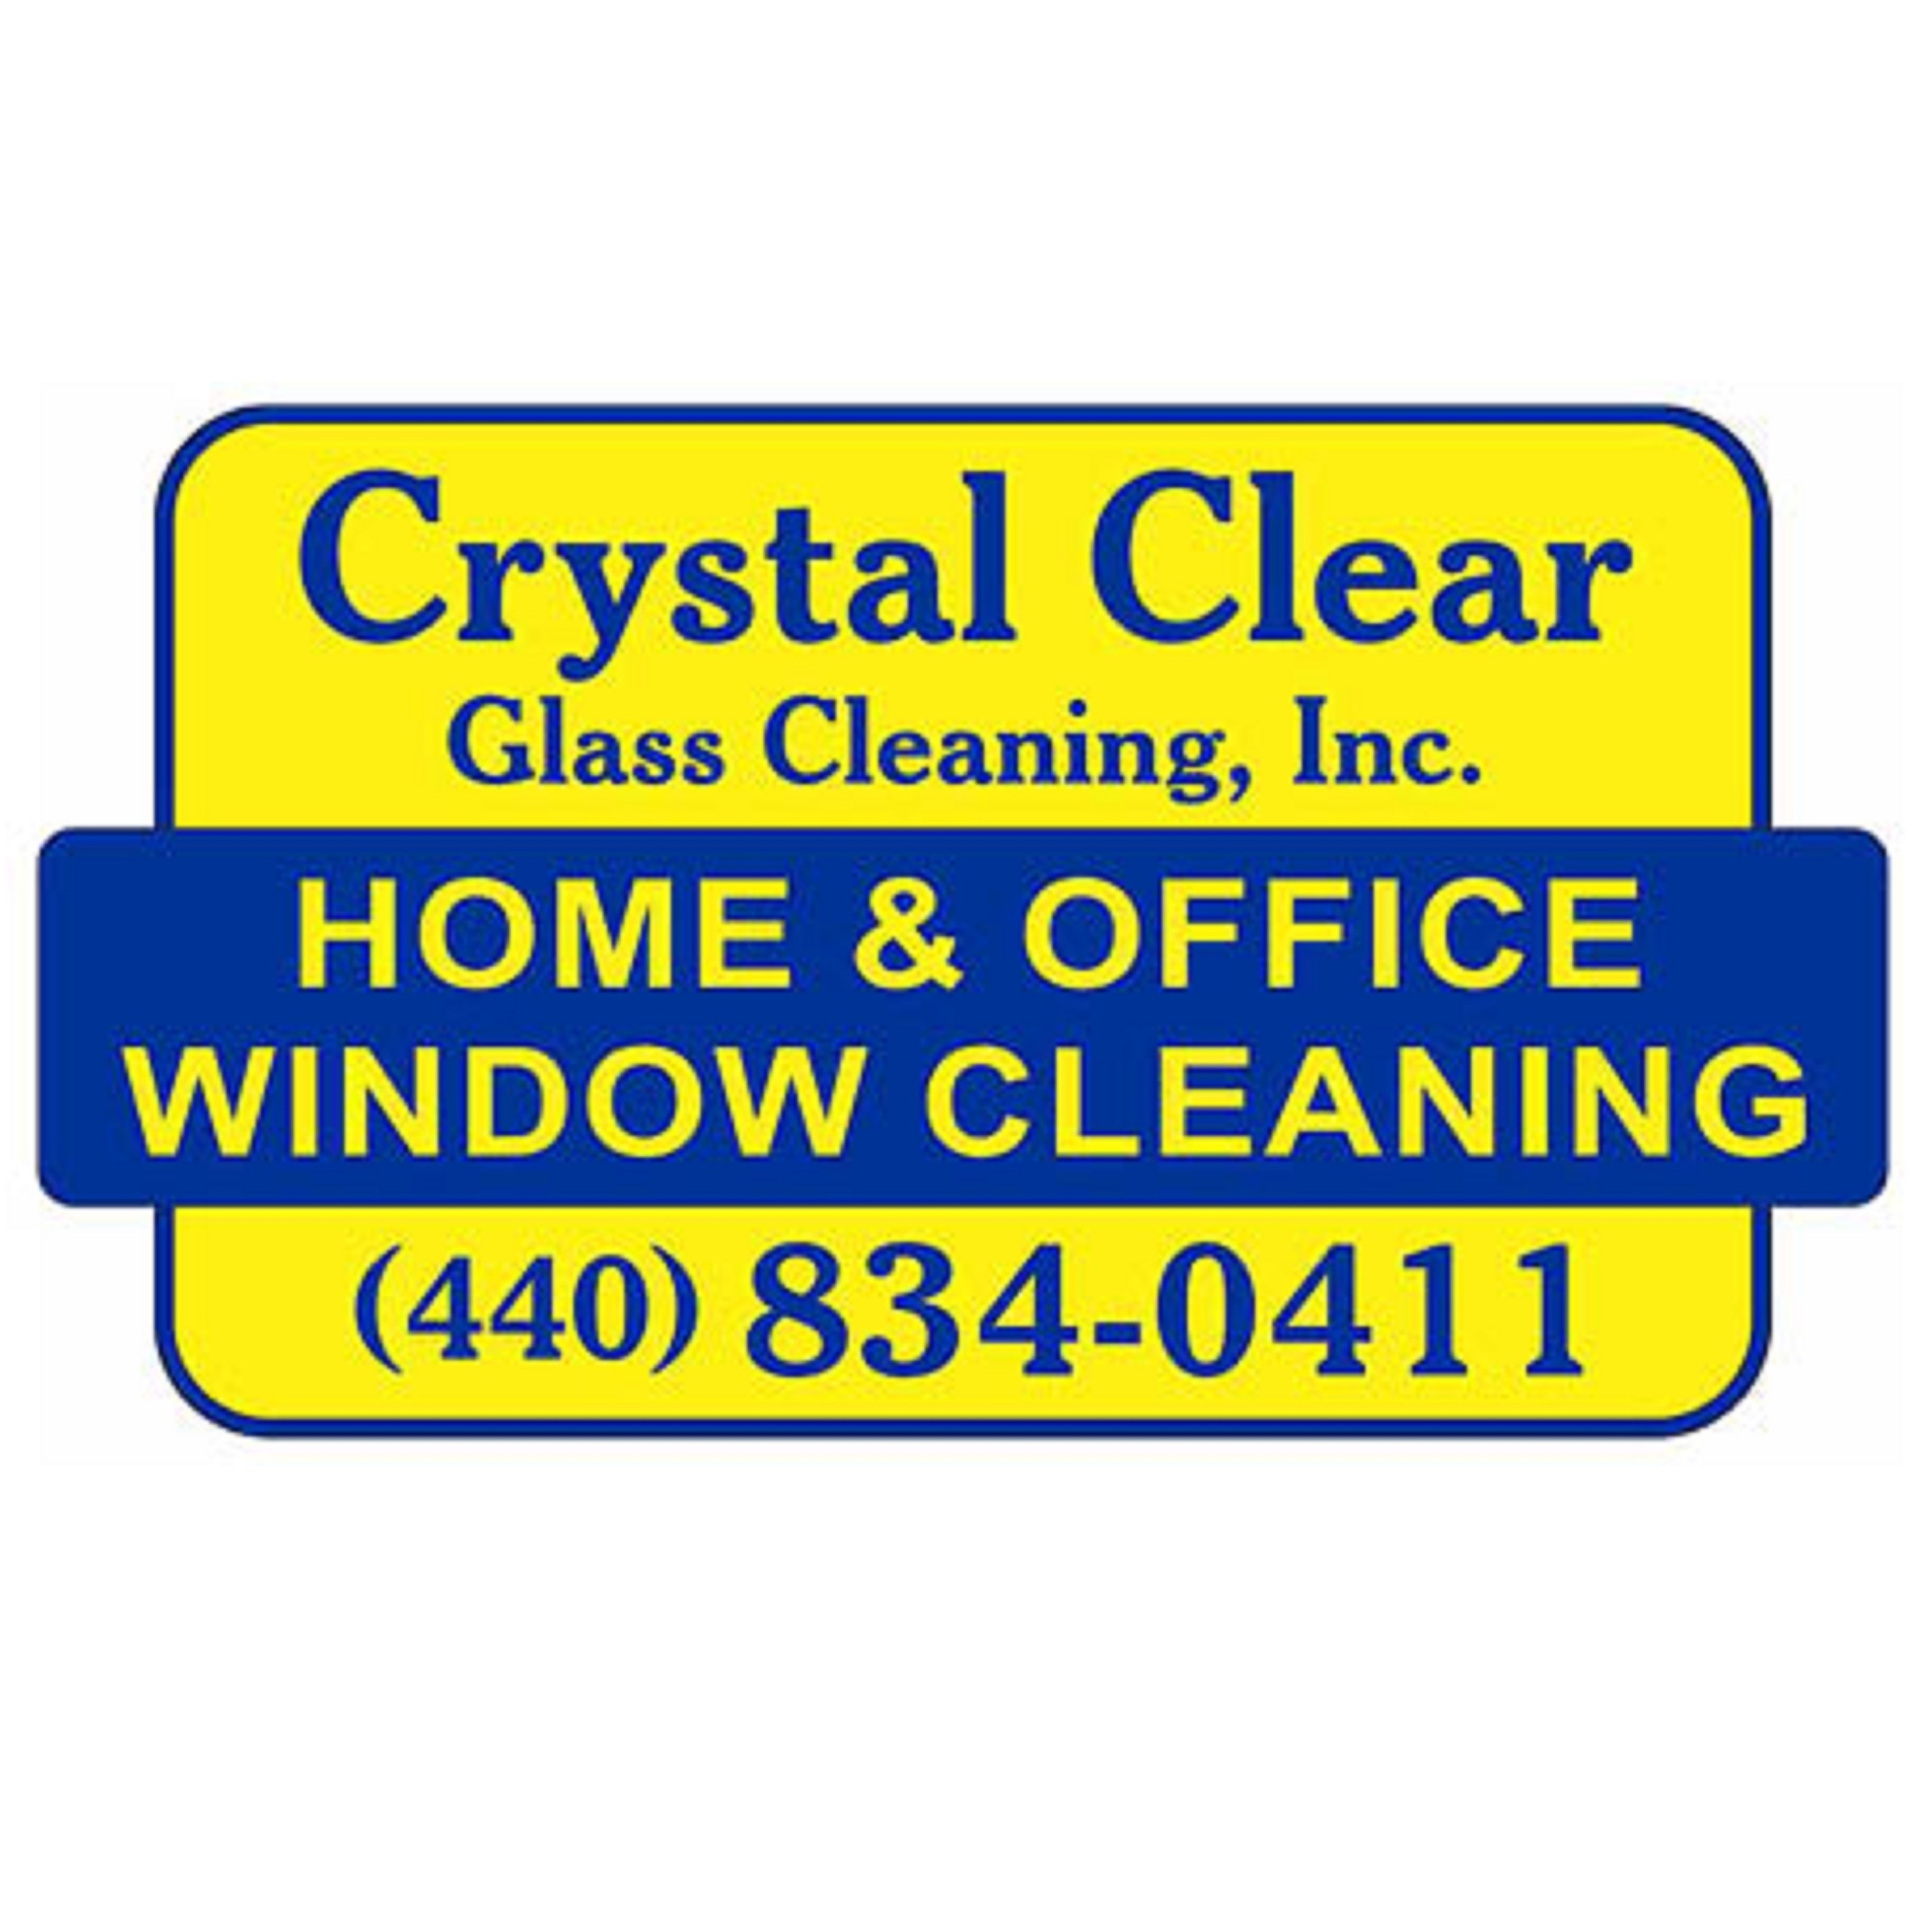 Crystal Clear Glass Cleaning, Inc. - Burton, OH - Window Cleaning